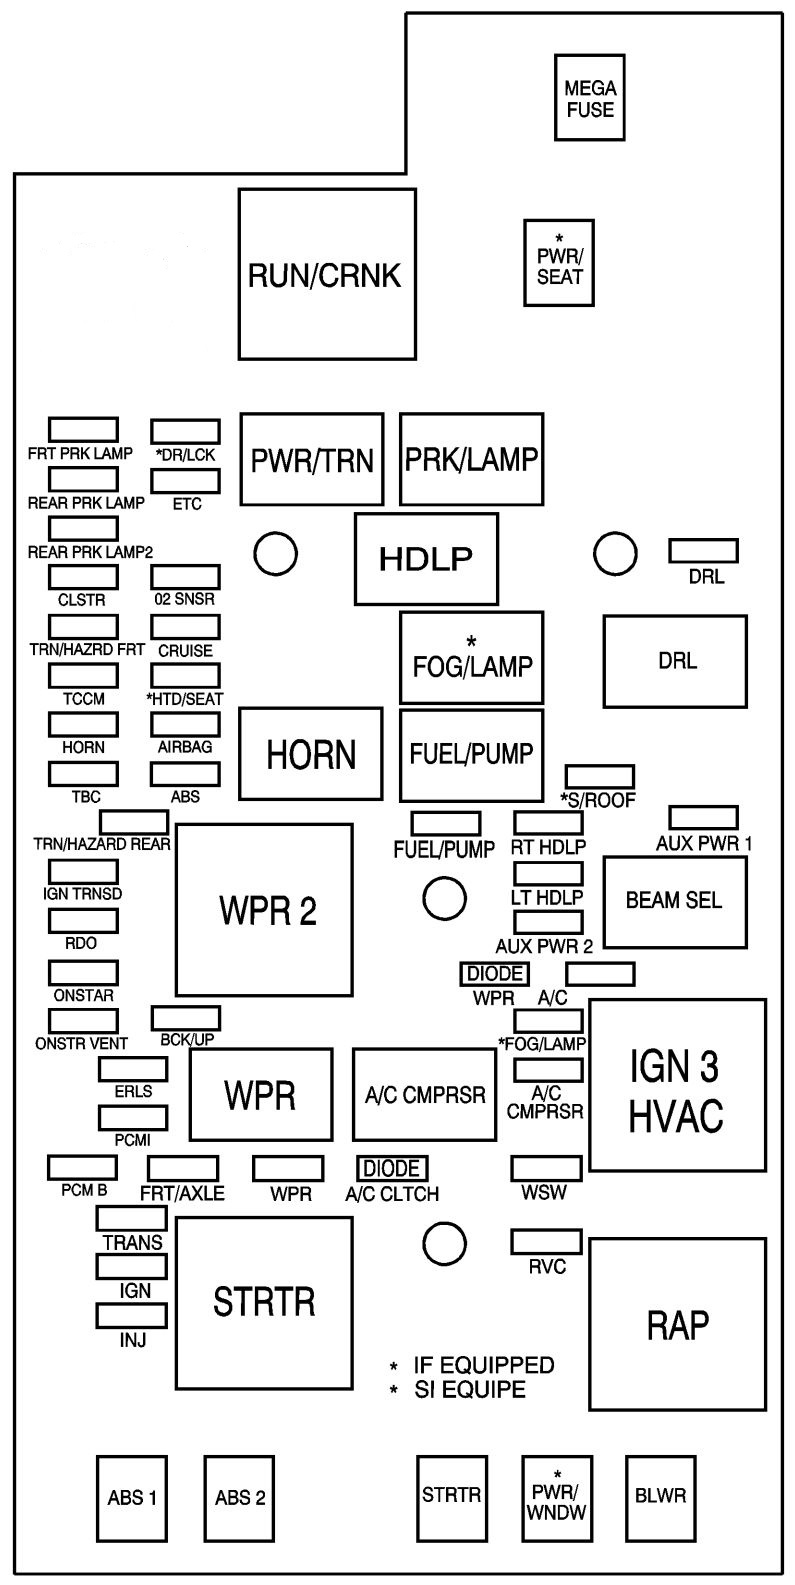 hight resolution of 2004 chevy impala fuse diagram wiring diagram sort 06 impala fuse box diagram